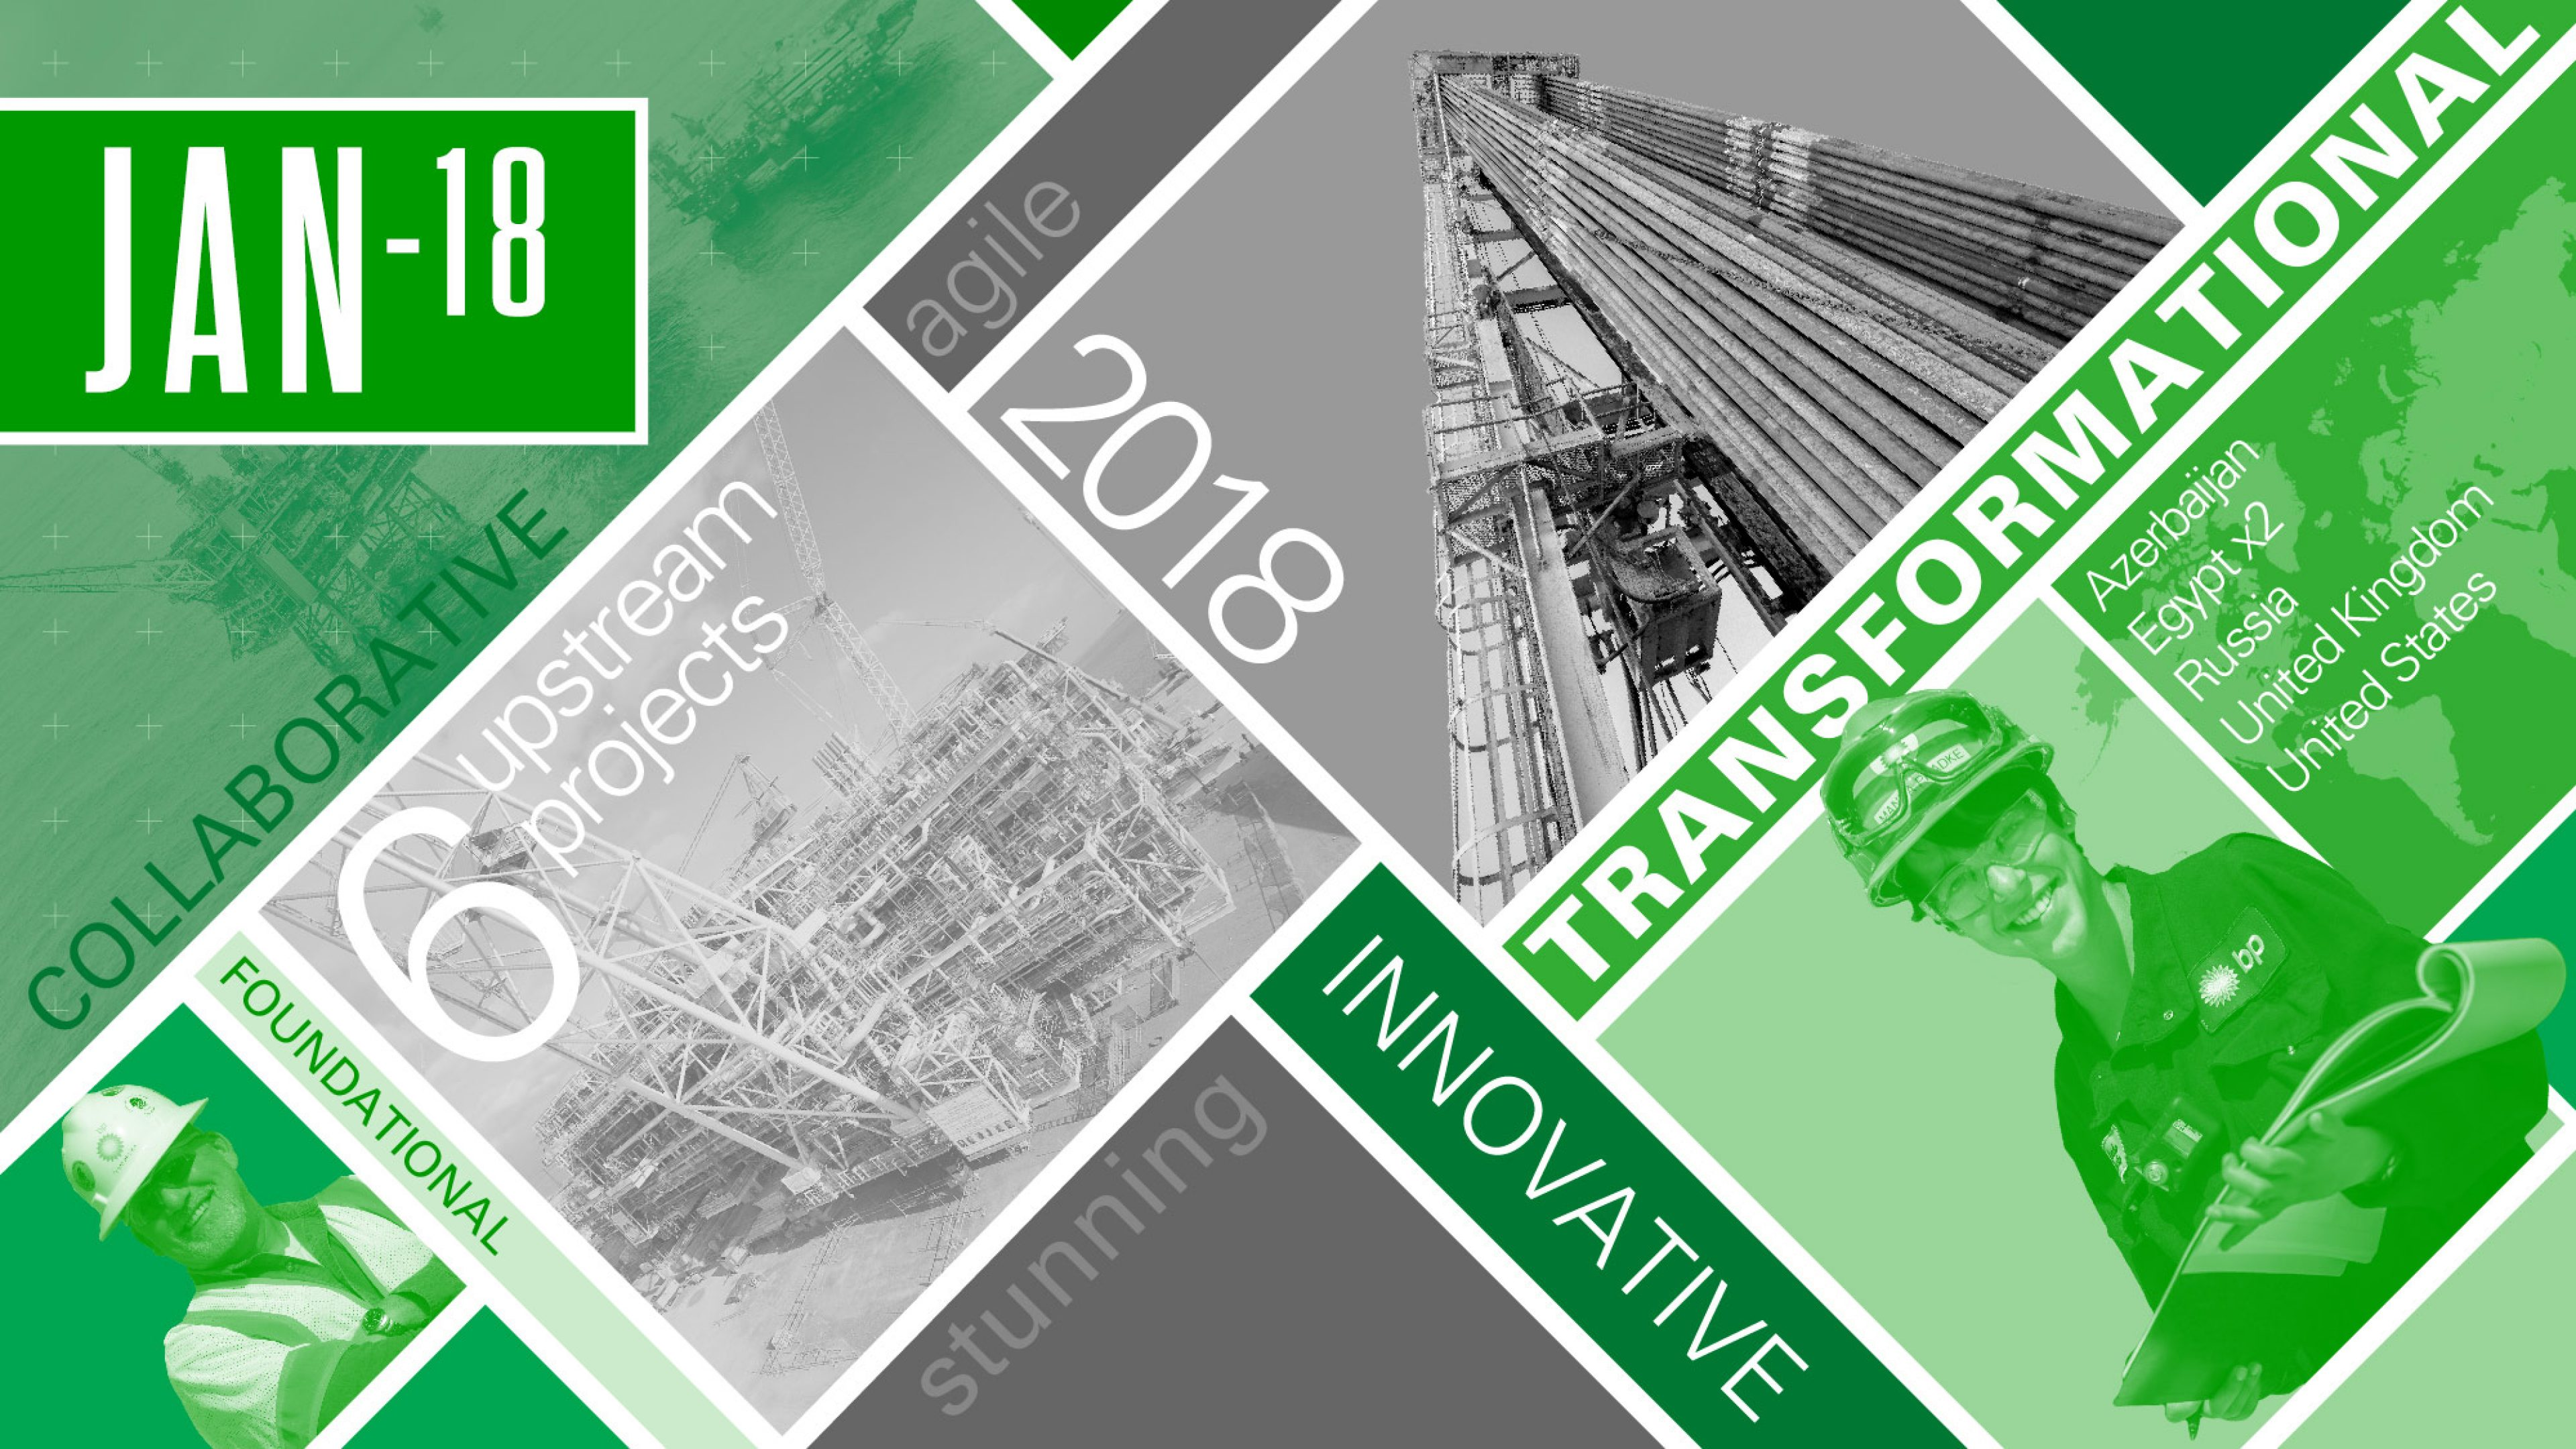 Graphic shows the one-word descriptions of BP's major projects in 2018Graphic shows the one-word descriptions of BPs major projects in 2018